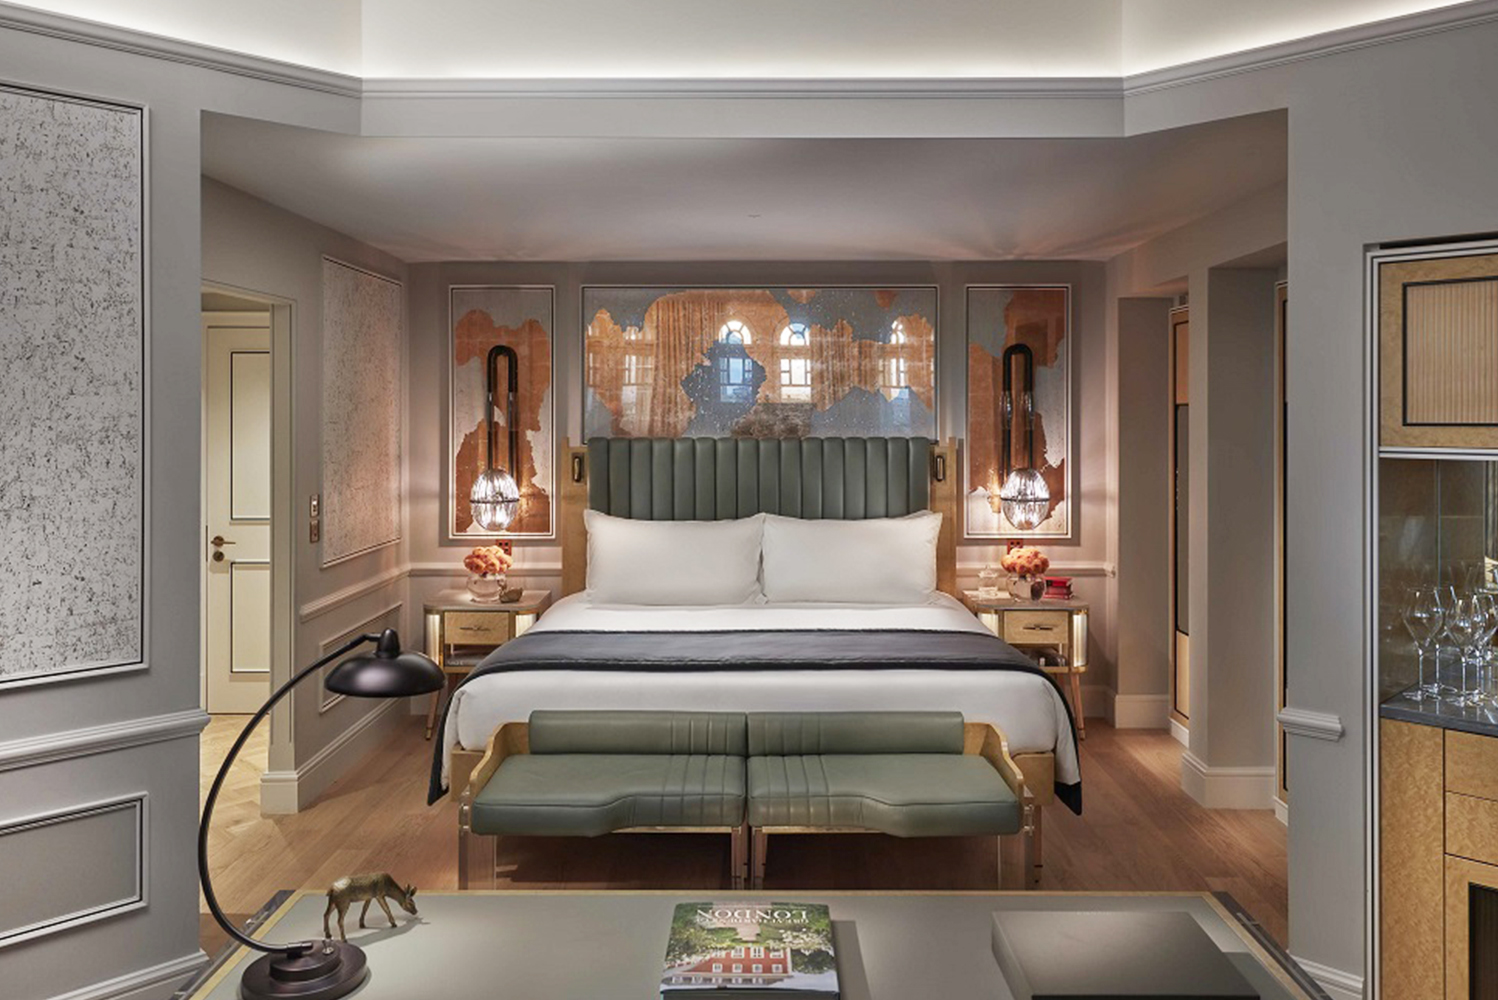 Mandarin Oriental Hyde Park, London is scheduled to complete the second phase of the renovation of the property in the third quarter of 2018.